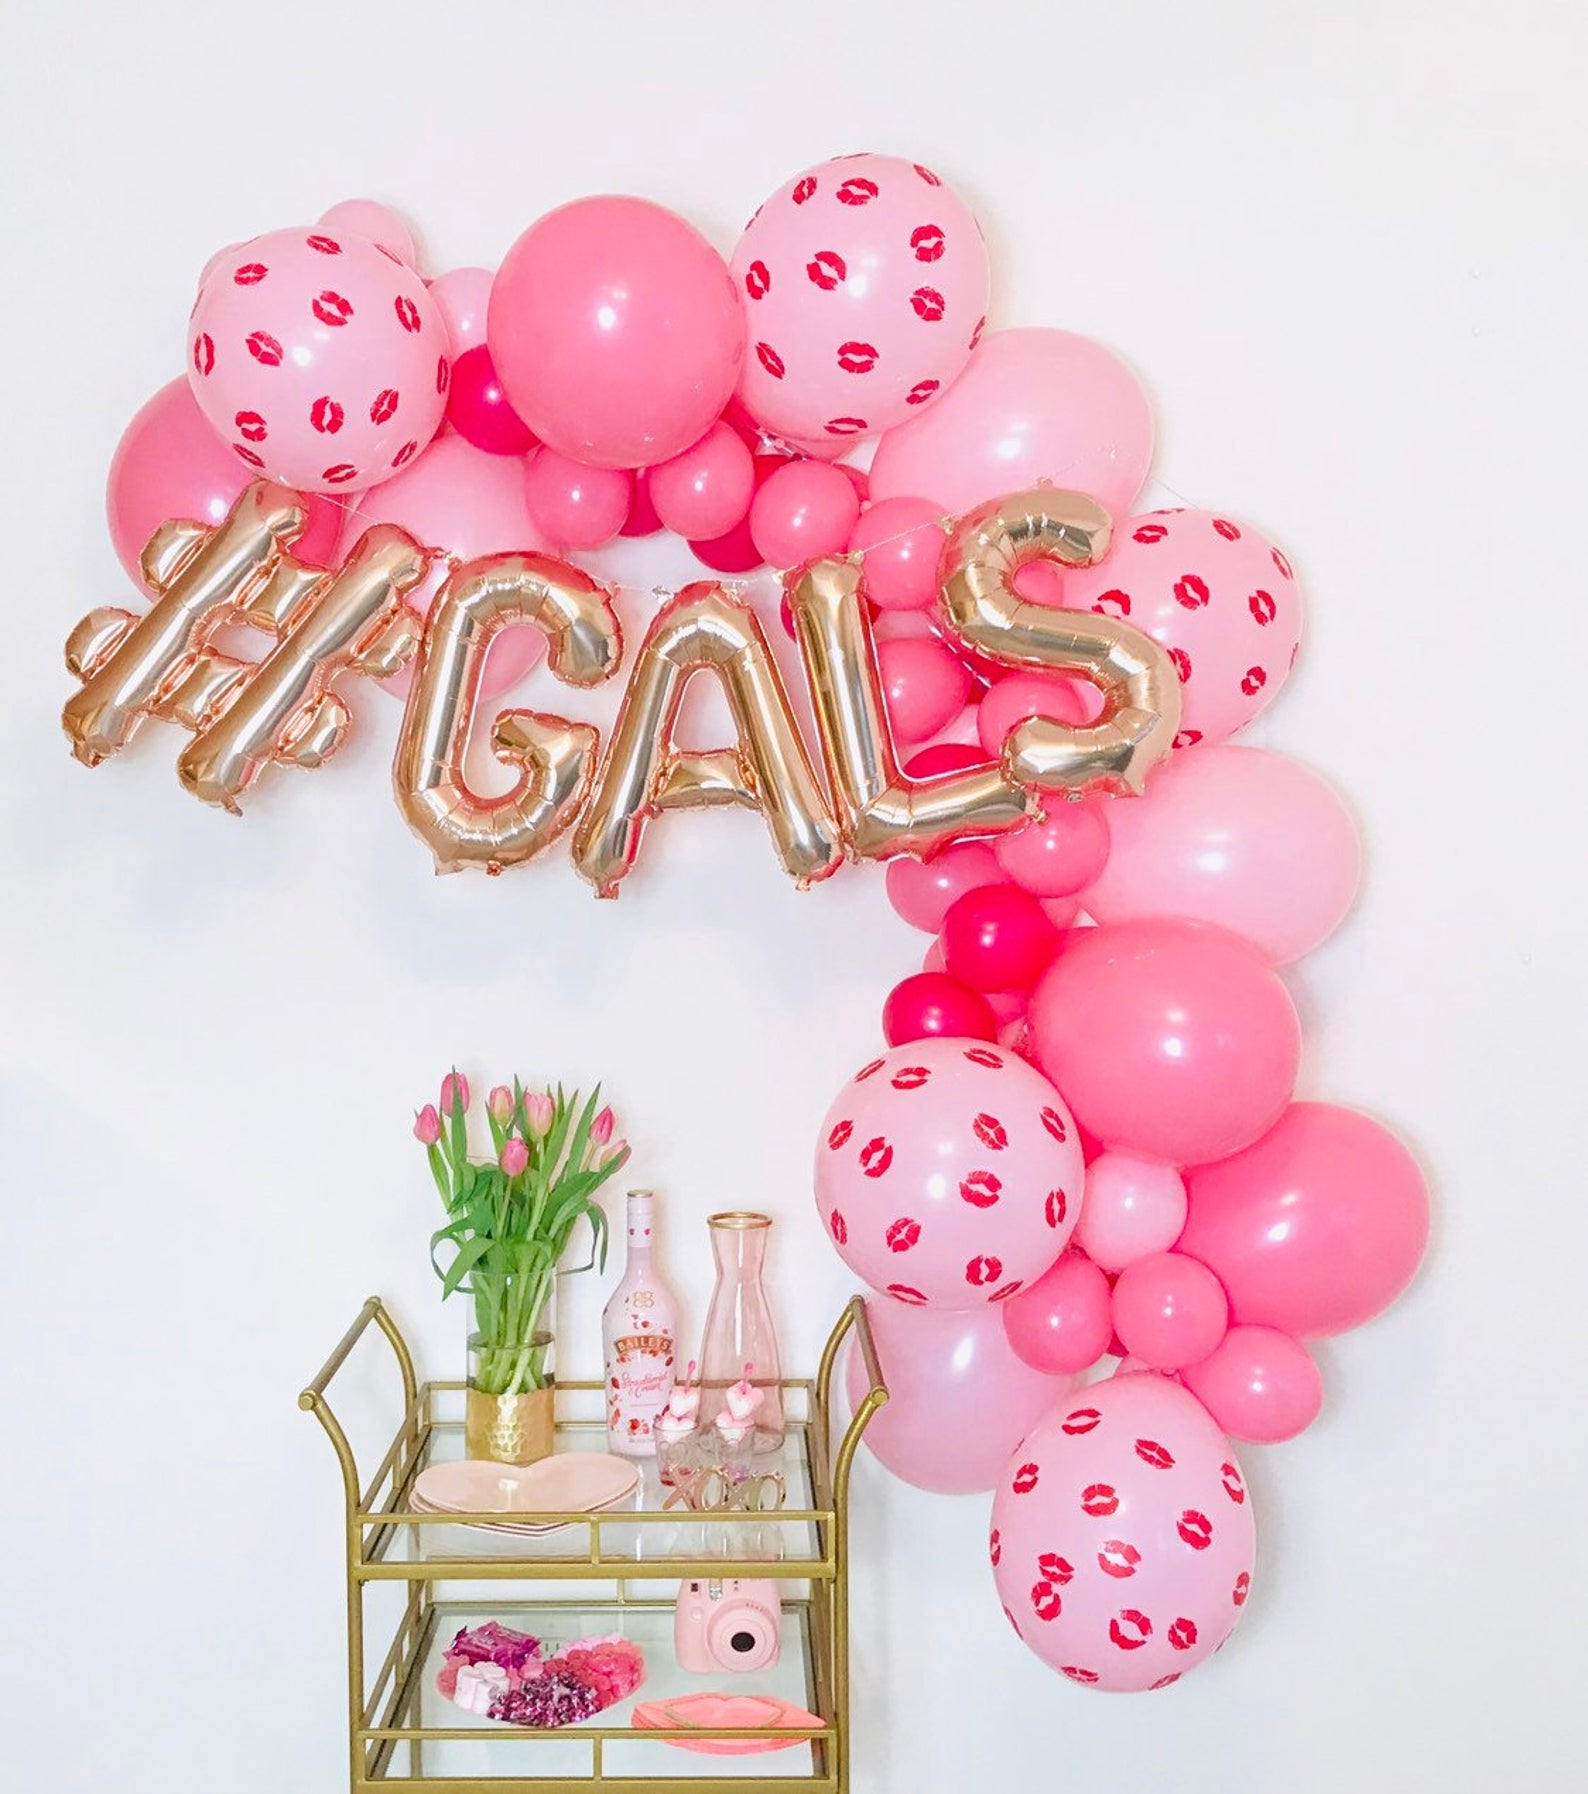 Valentine's Day Party Decorations - #Gals Balloon Garland - Galentine's Decorations